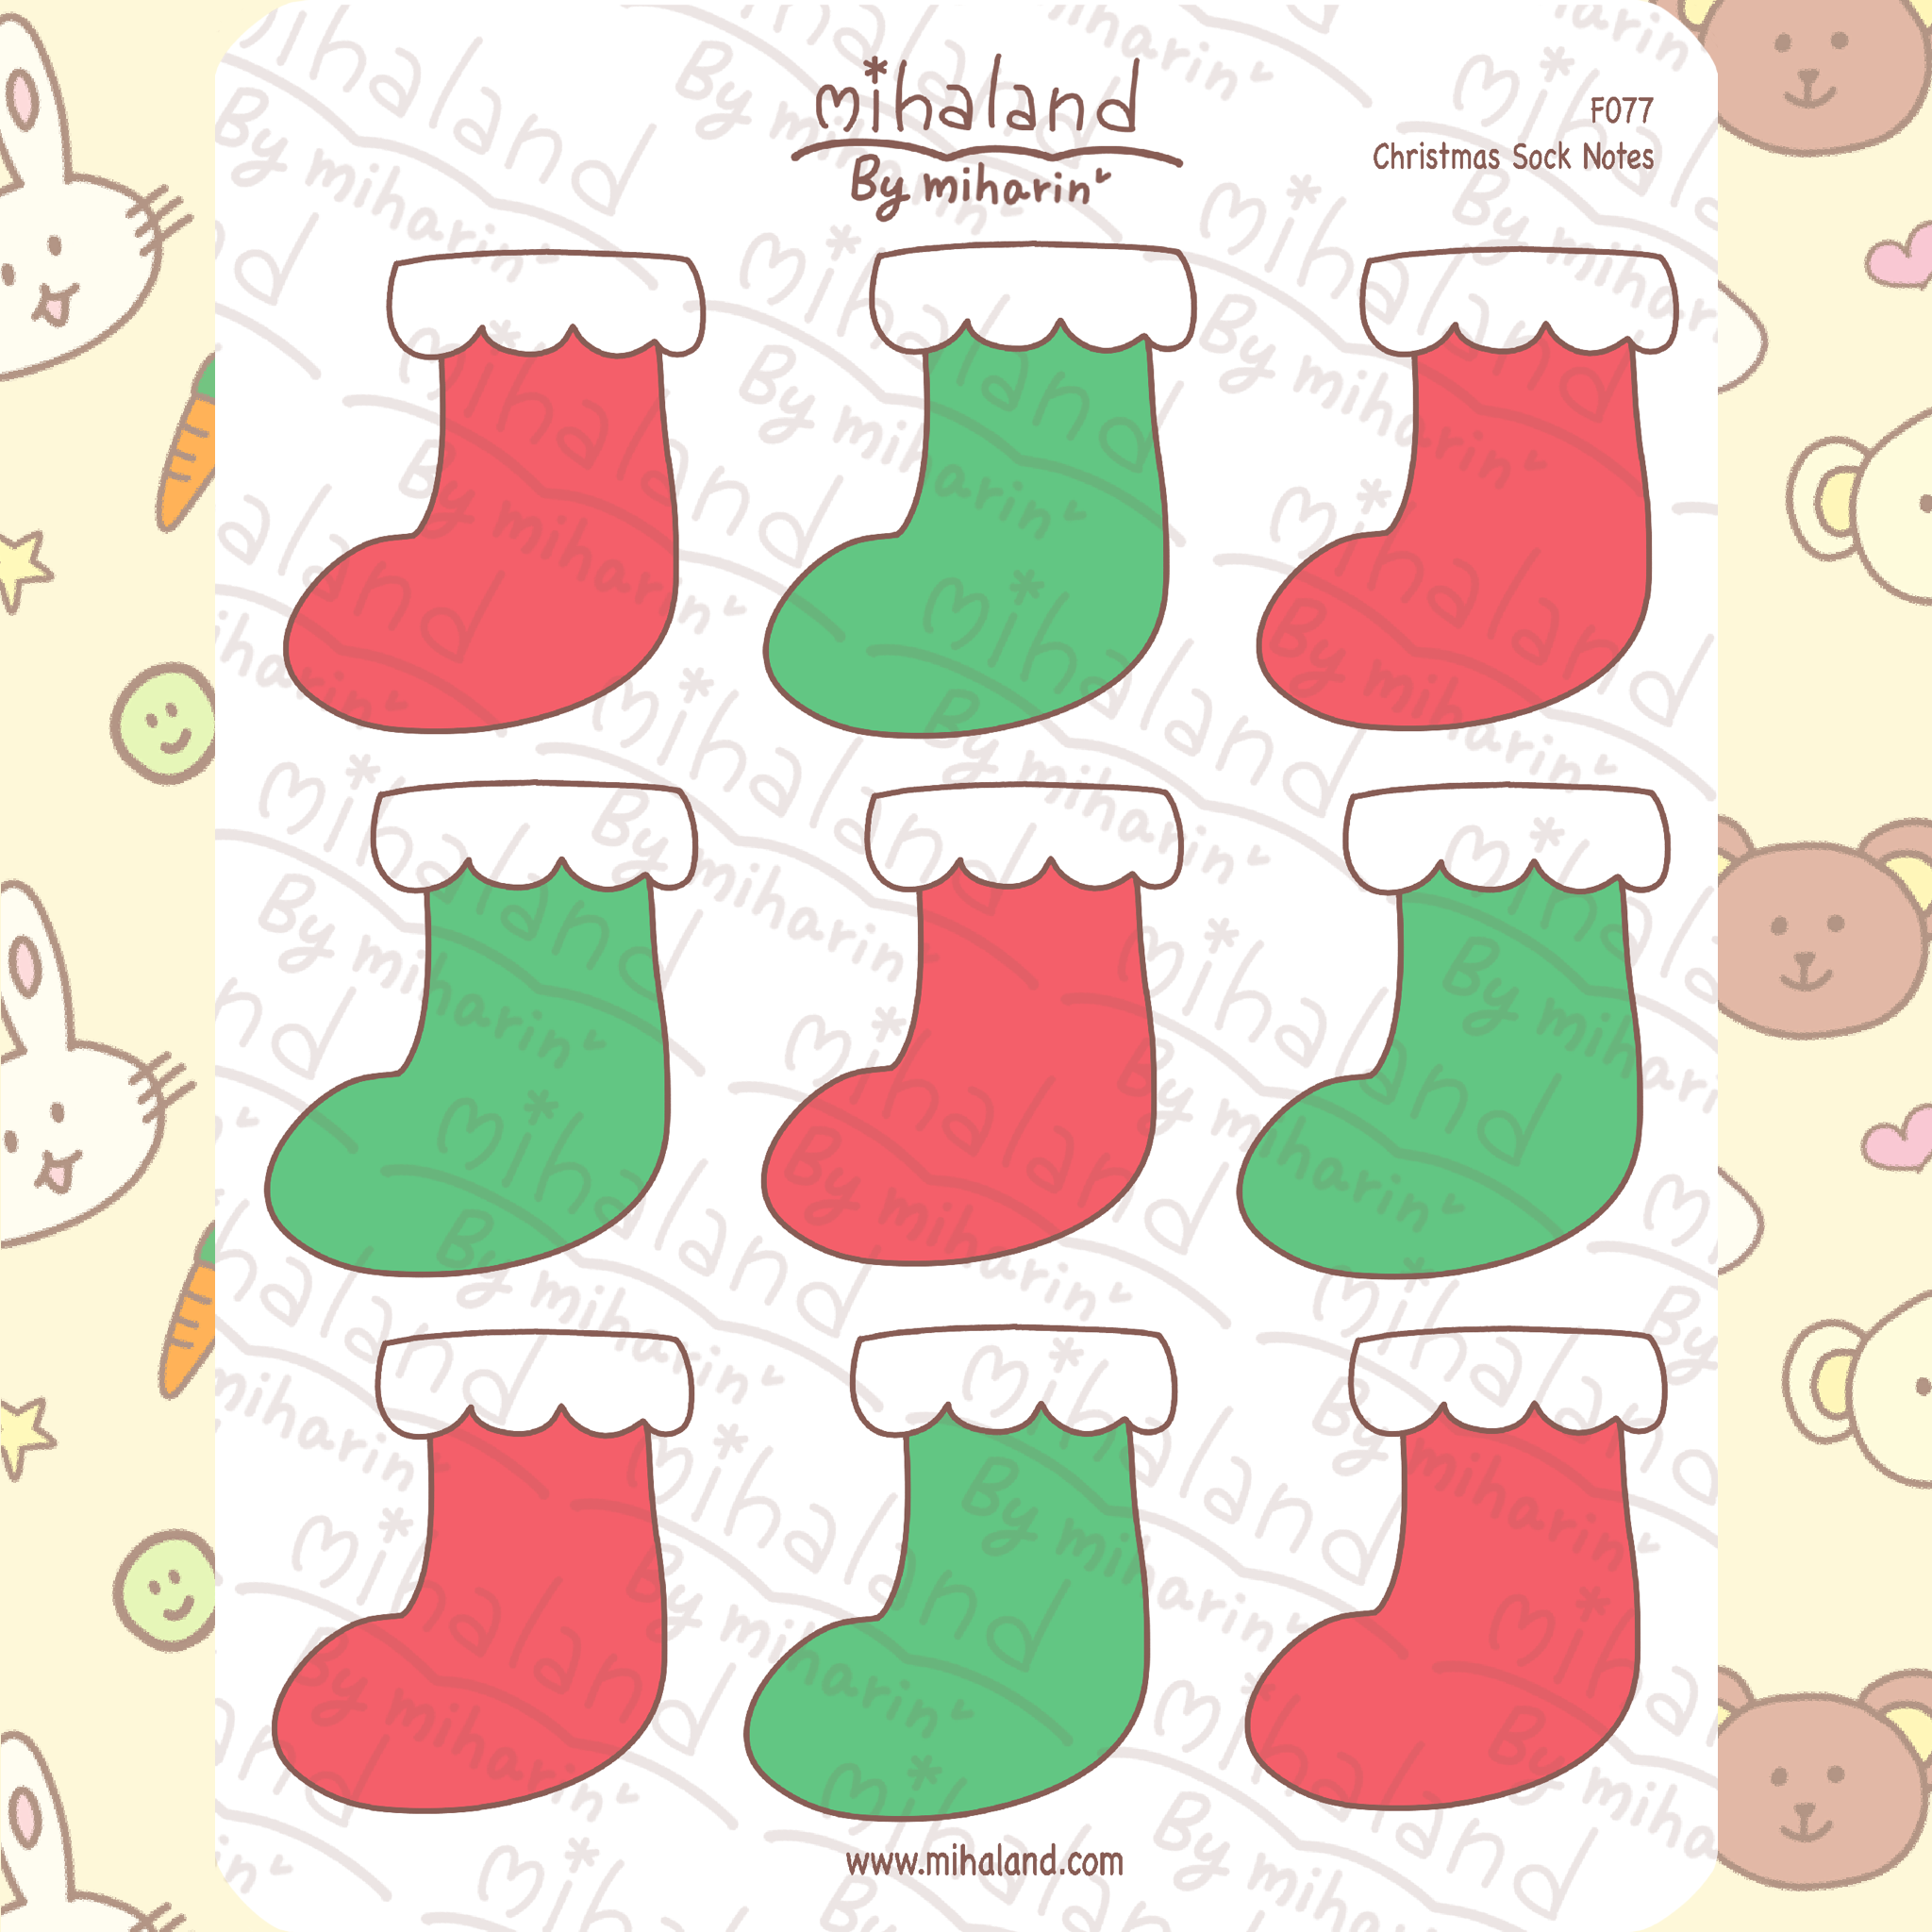 Christmas Socks Notes Planner Stickers (F077)